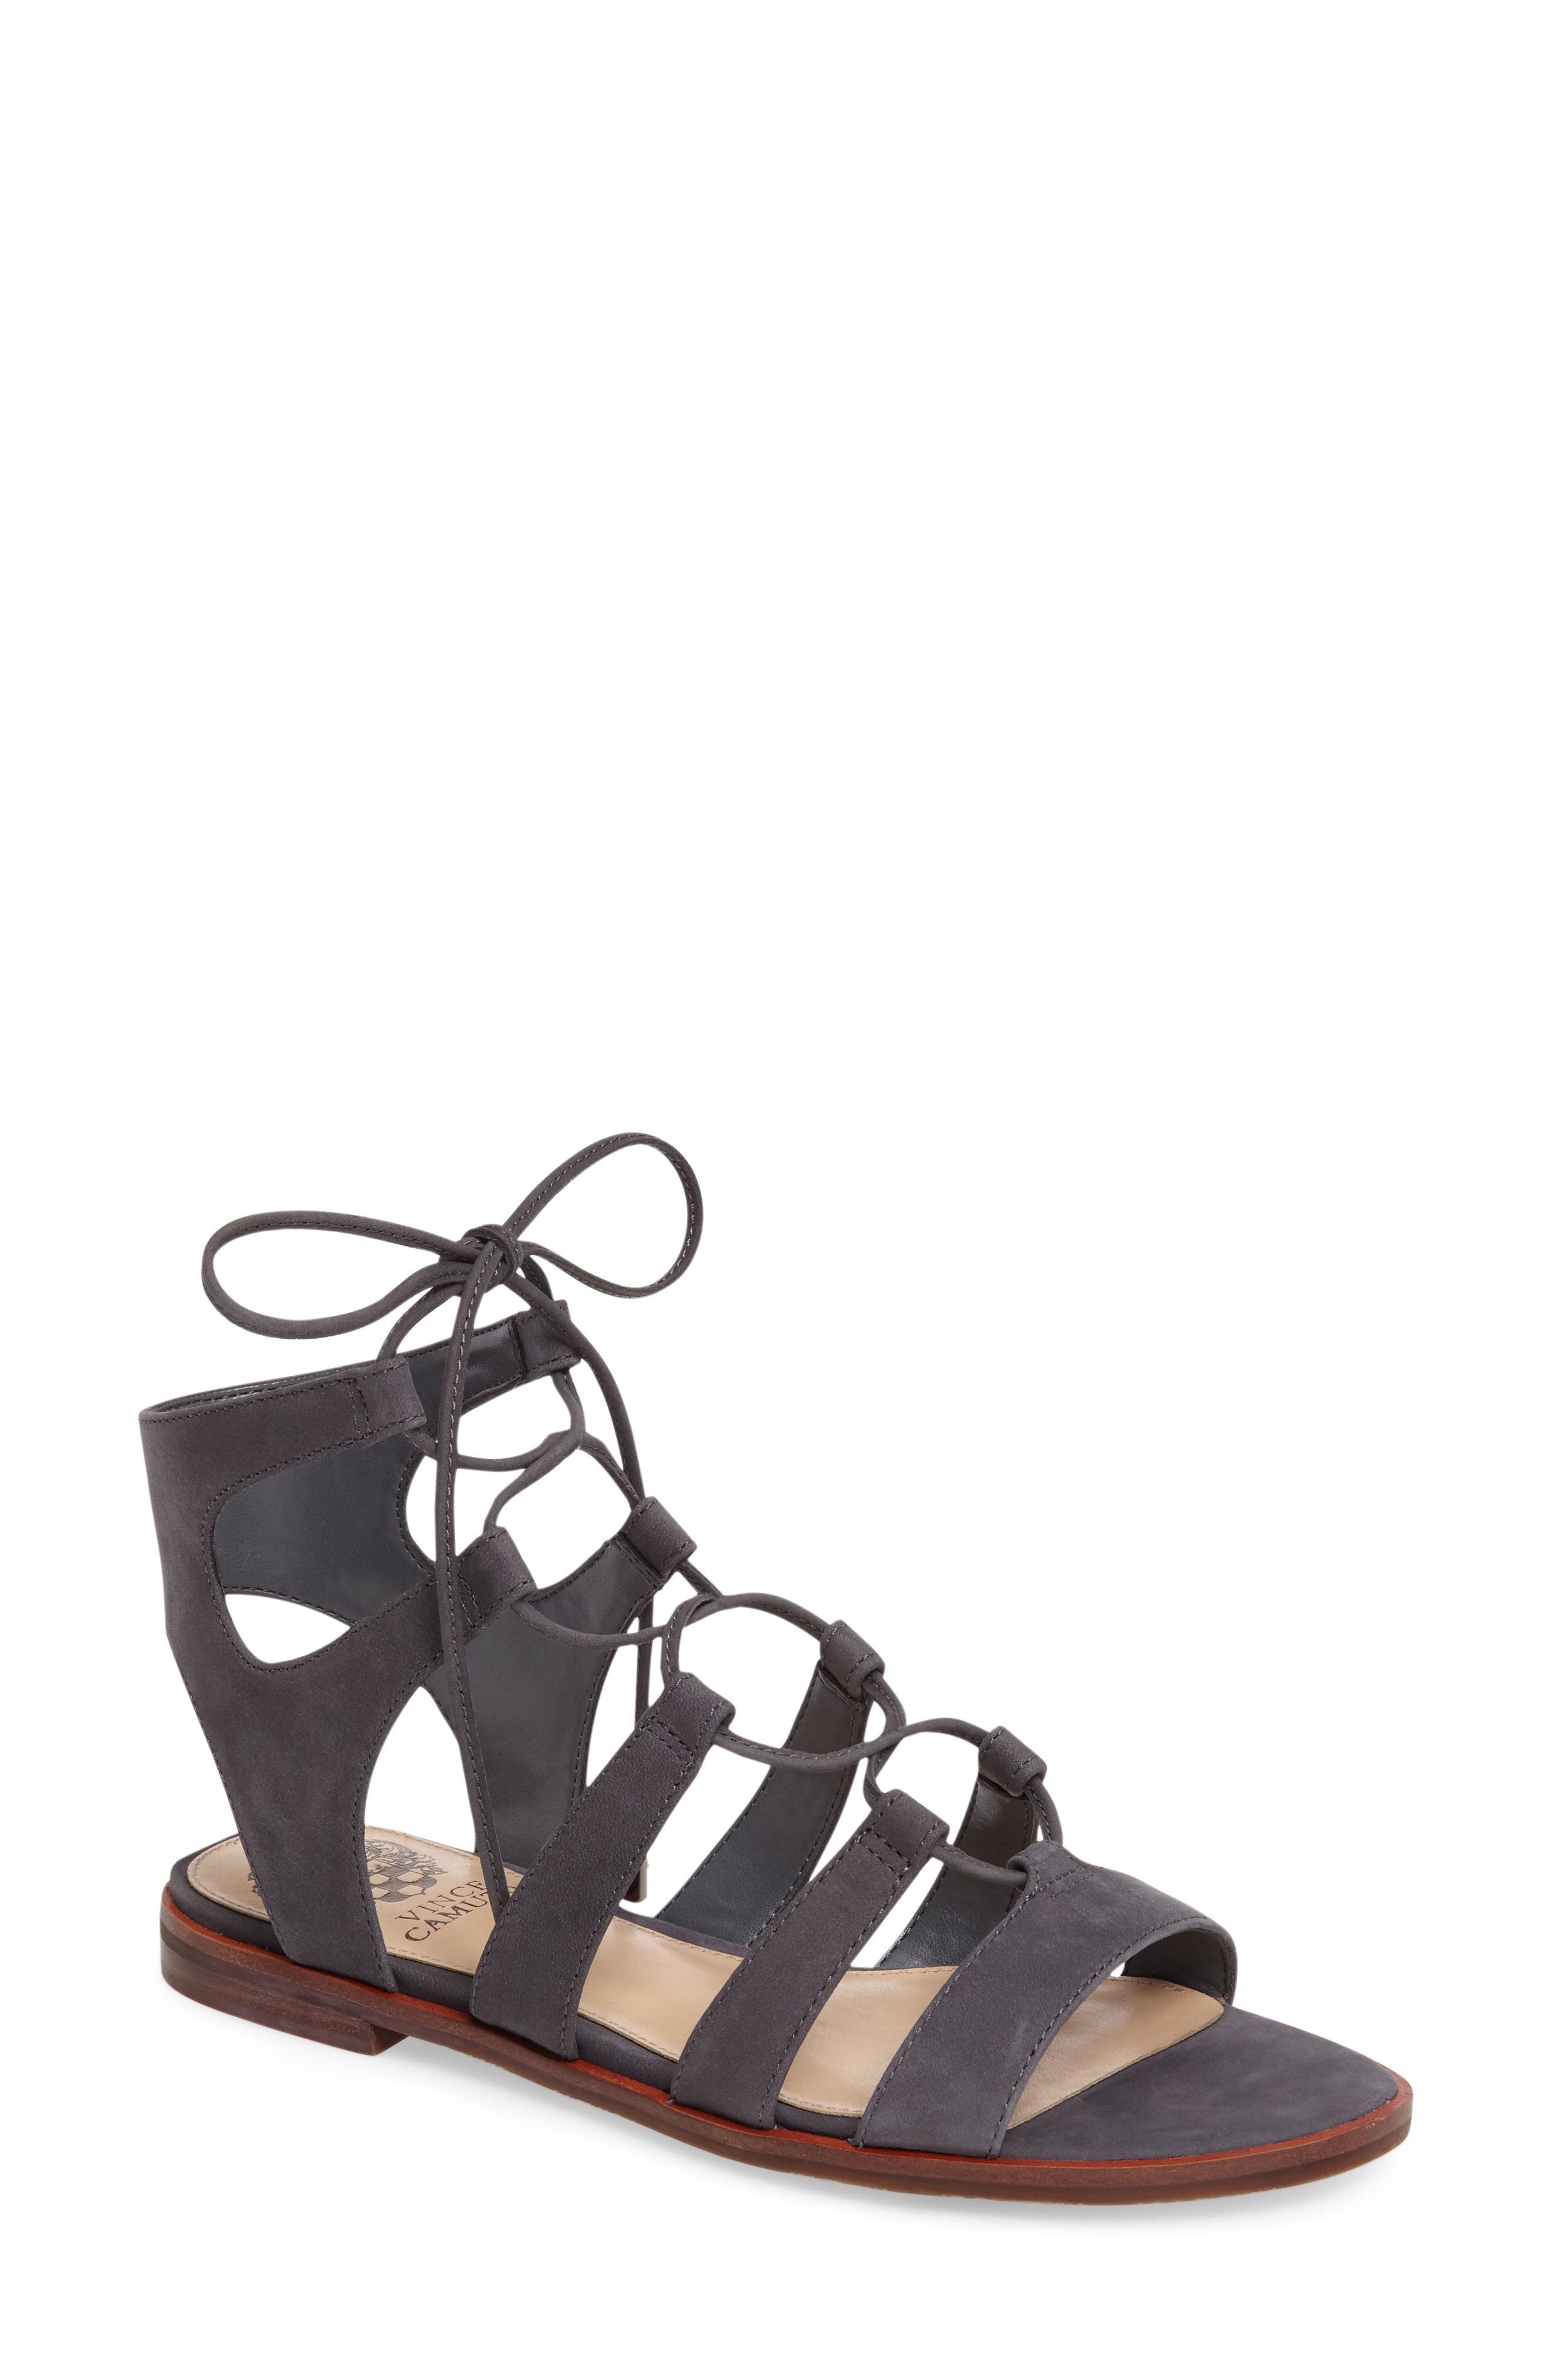 Main Image - Vince Camuto Tany Lace-Up Sandal (Women)